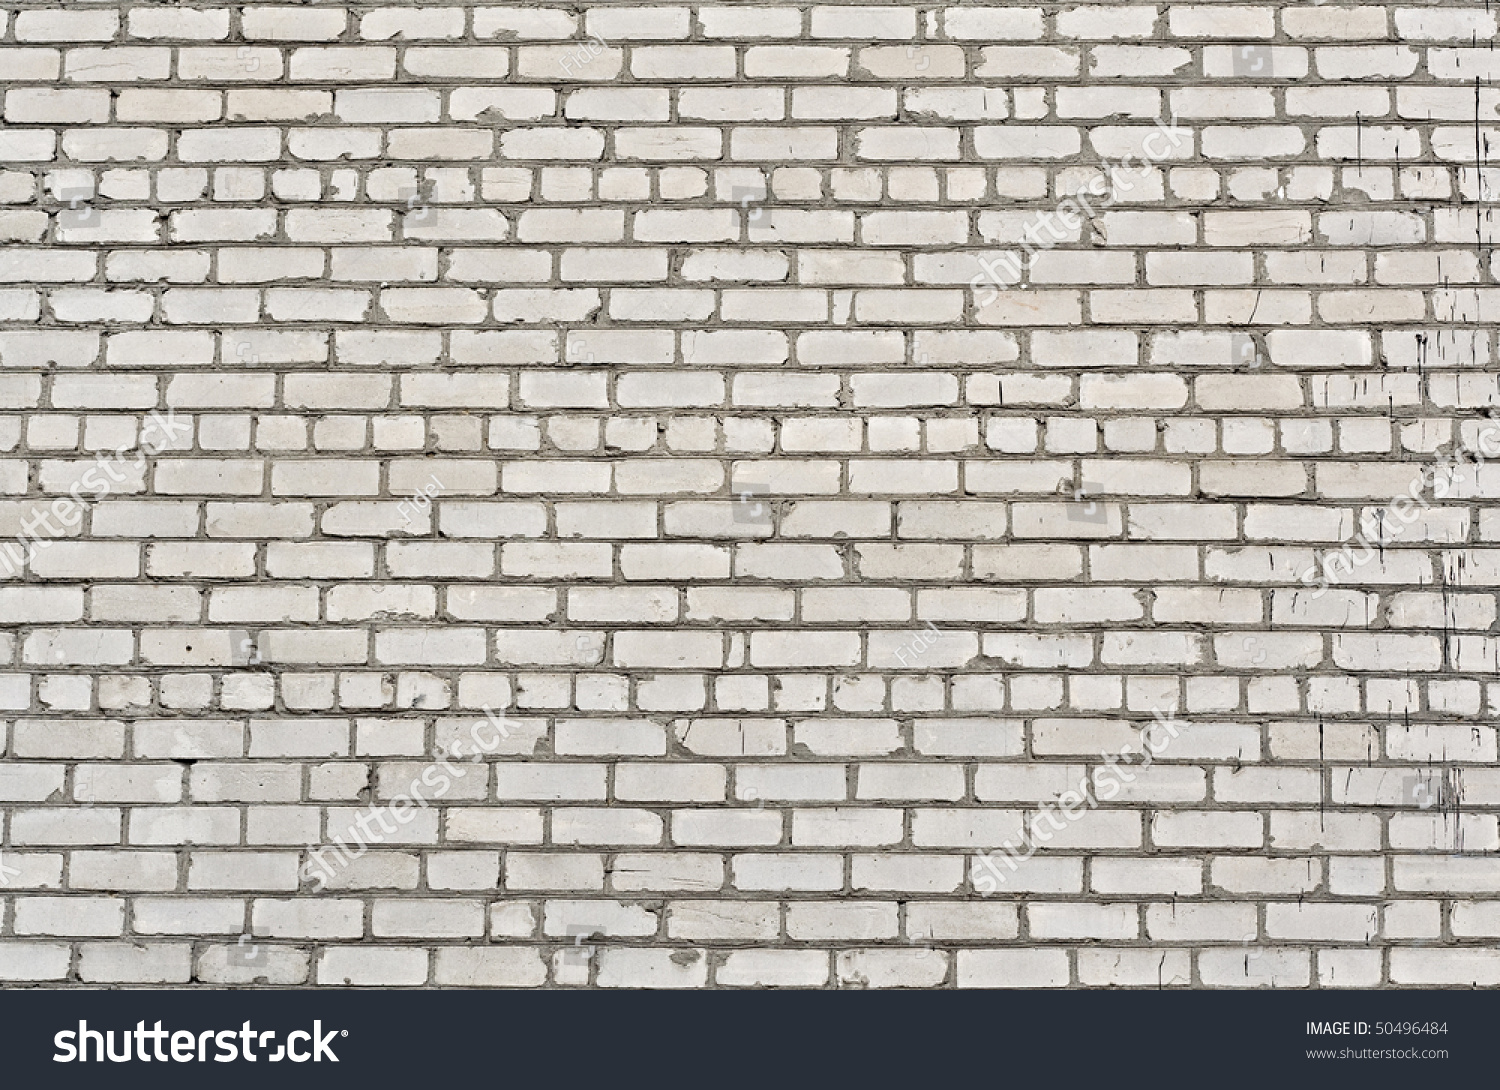 Lime Brick On Image : Wall of sand lime brick background stock photo